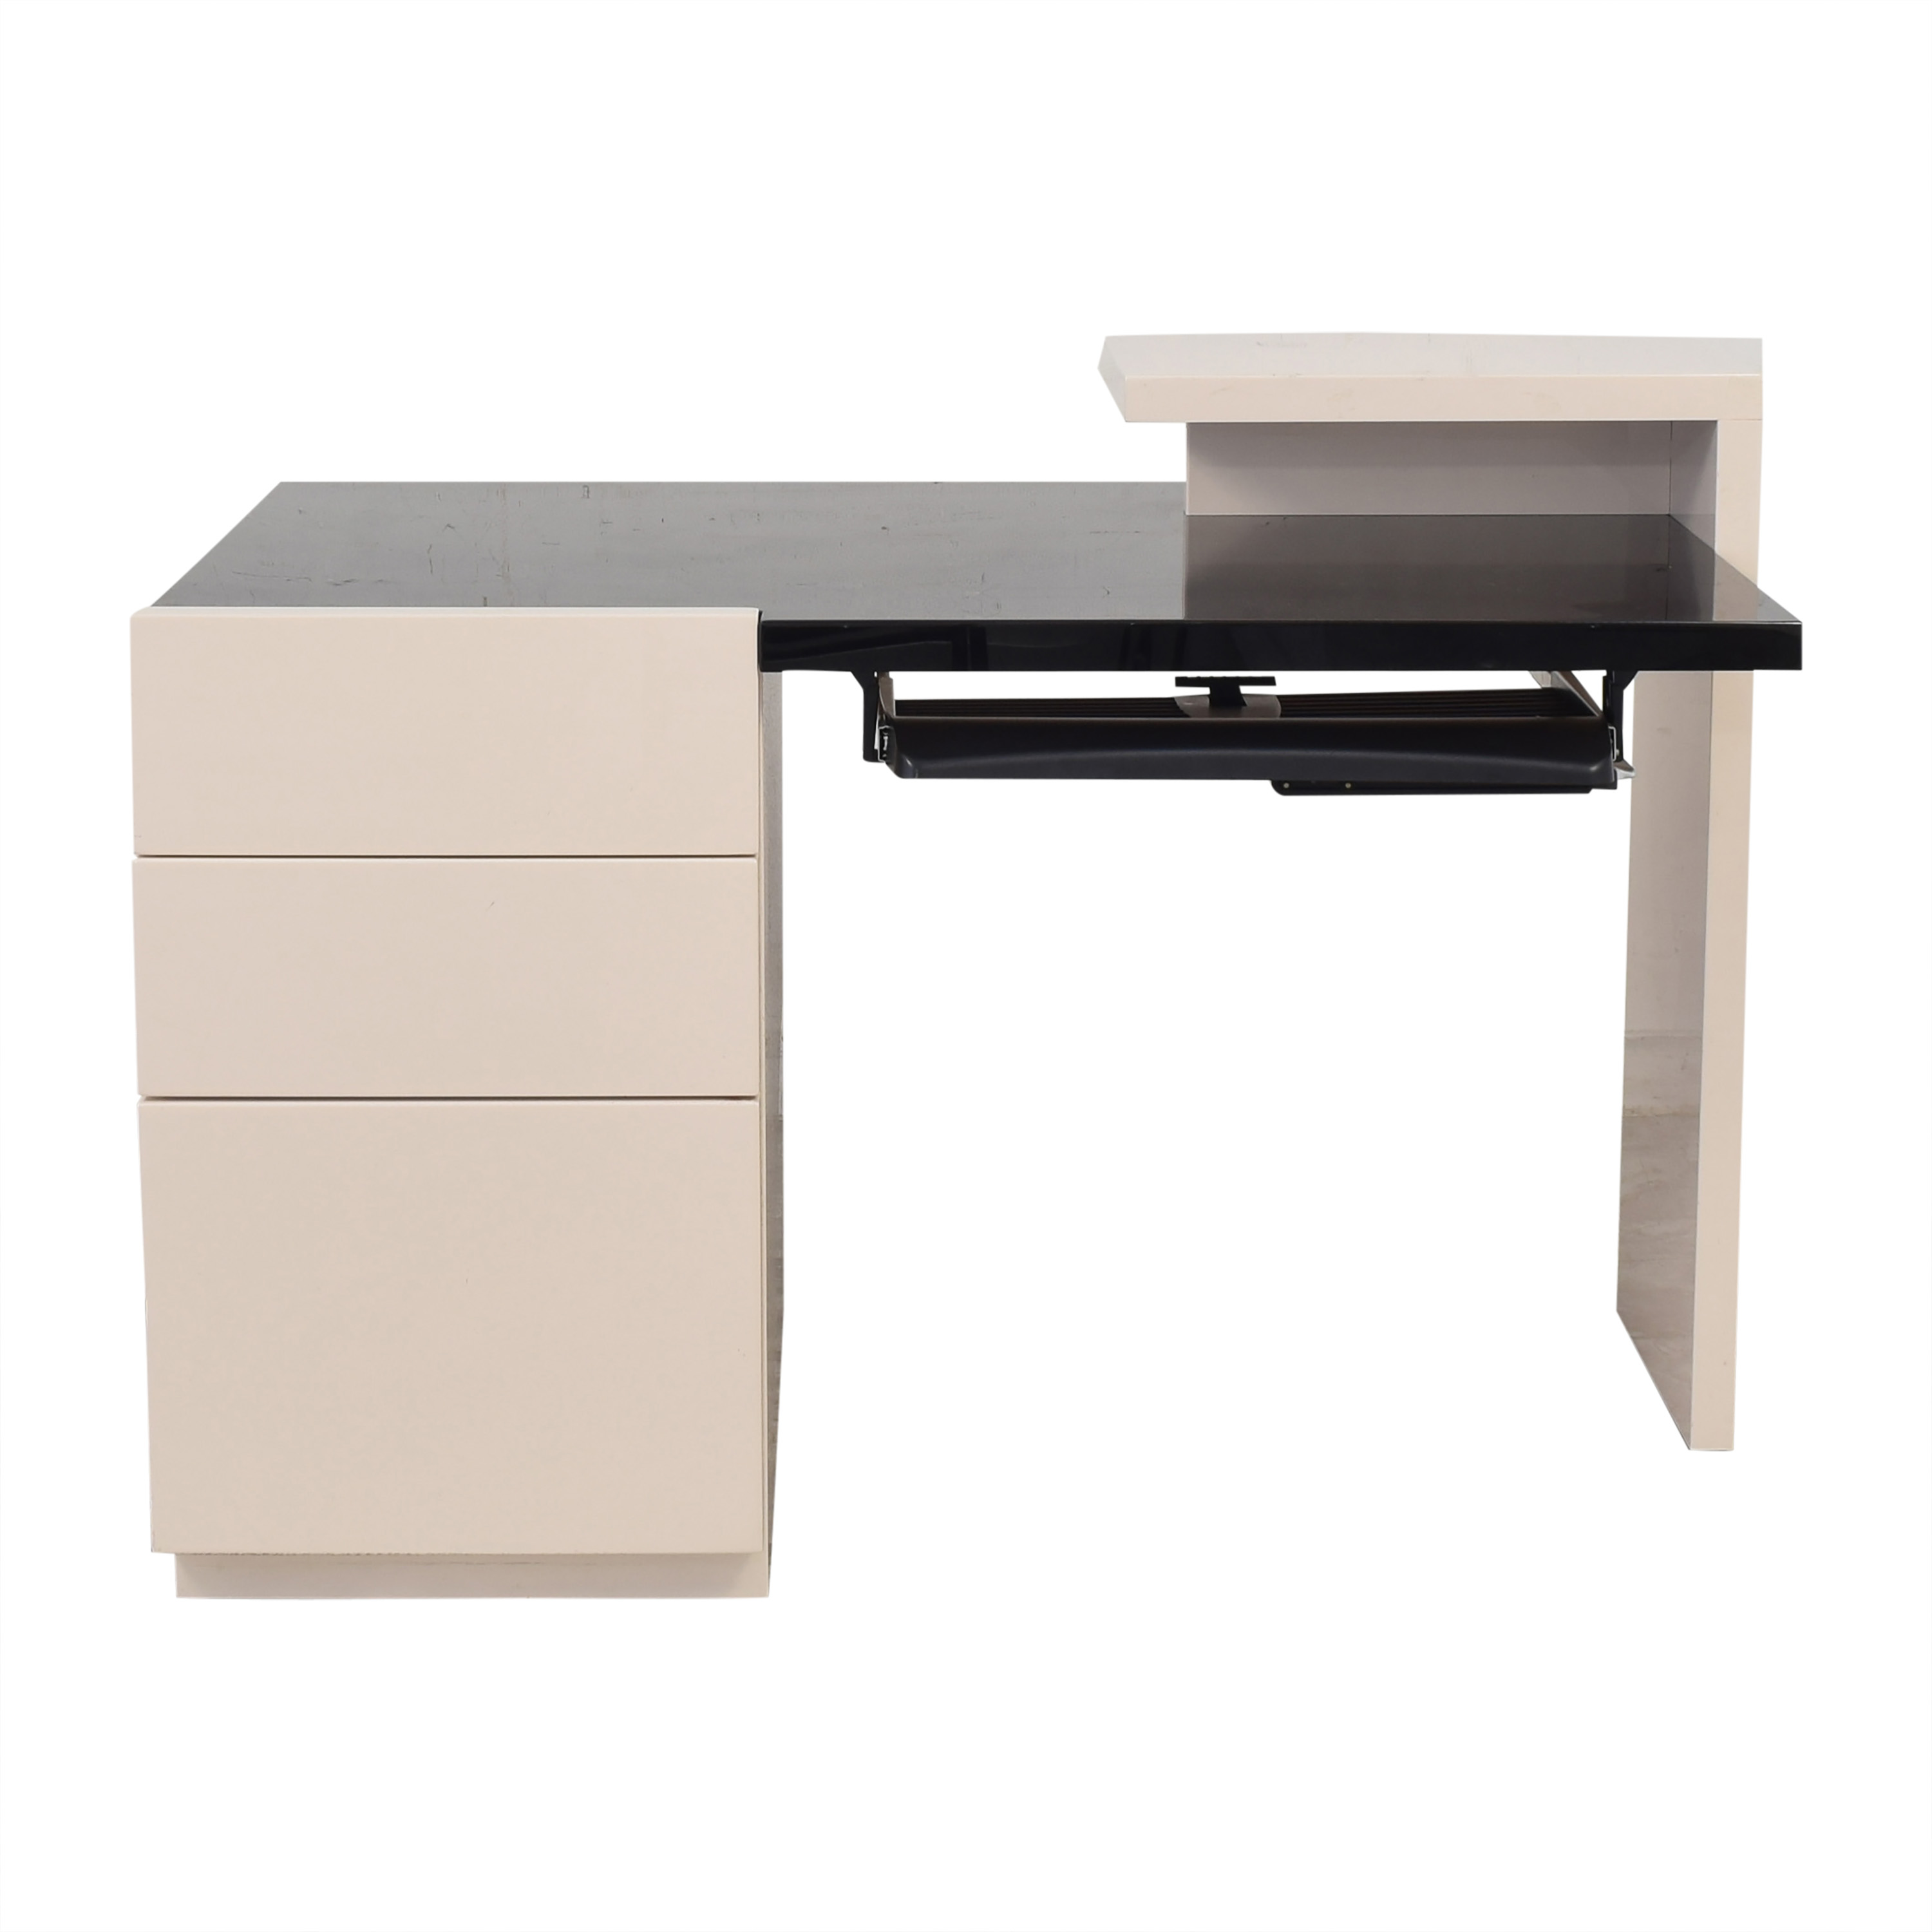 Maurice Villency Maurice Villency Followes Contemporary Desk for sale